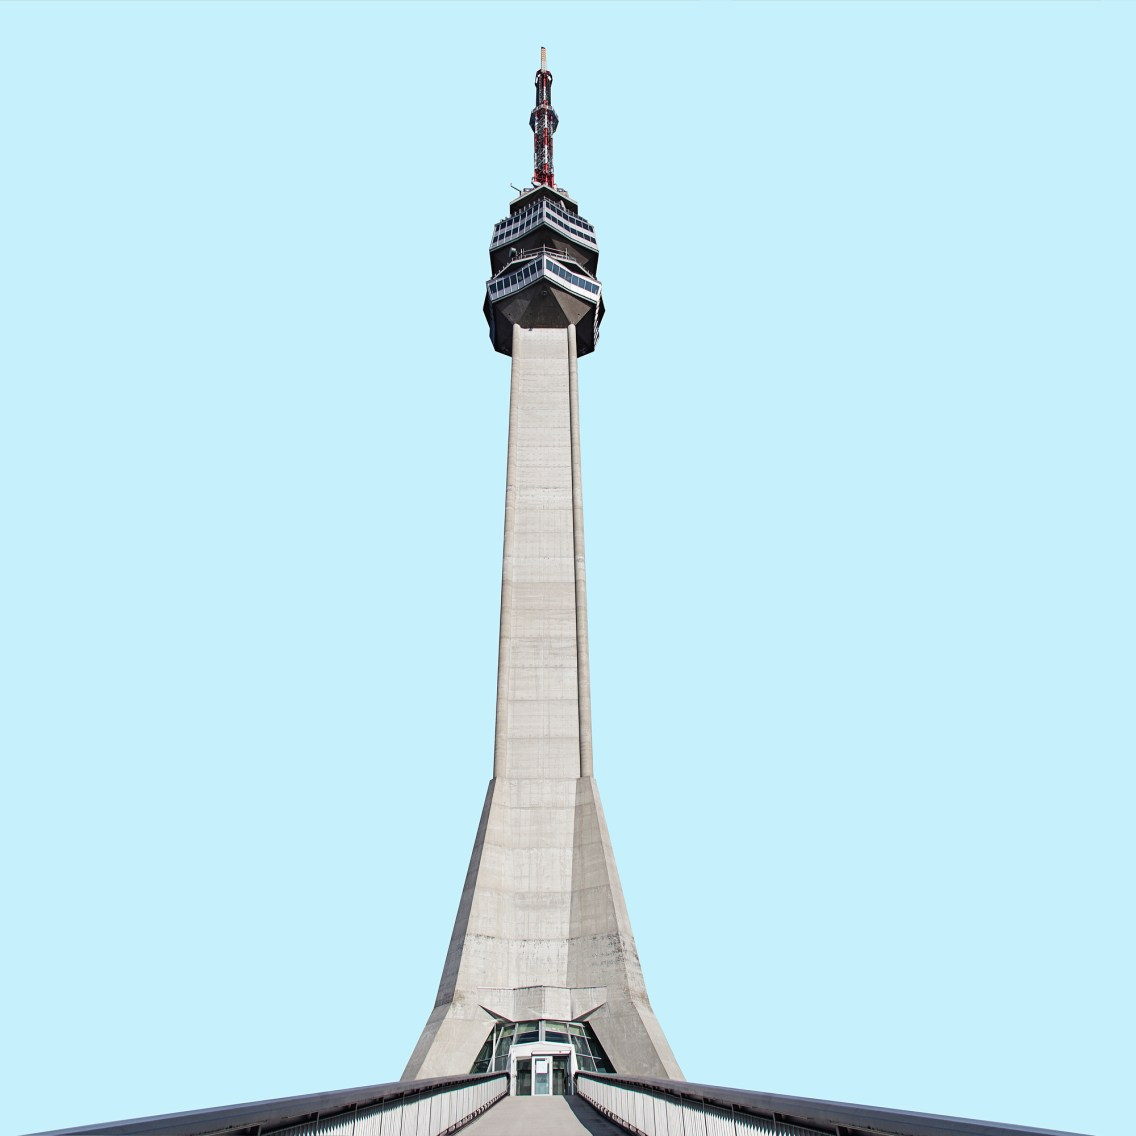 Avala Tower - Mirko Nahmijas